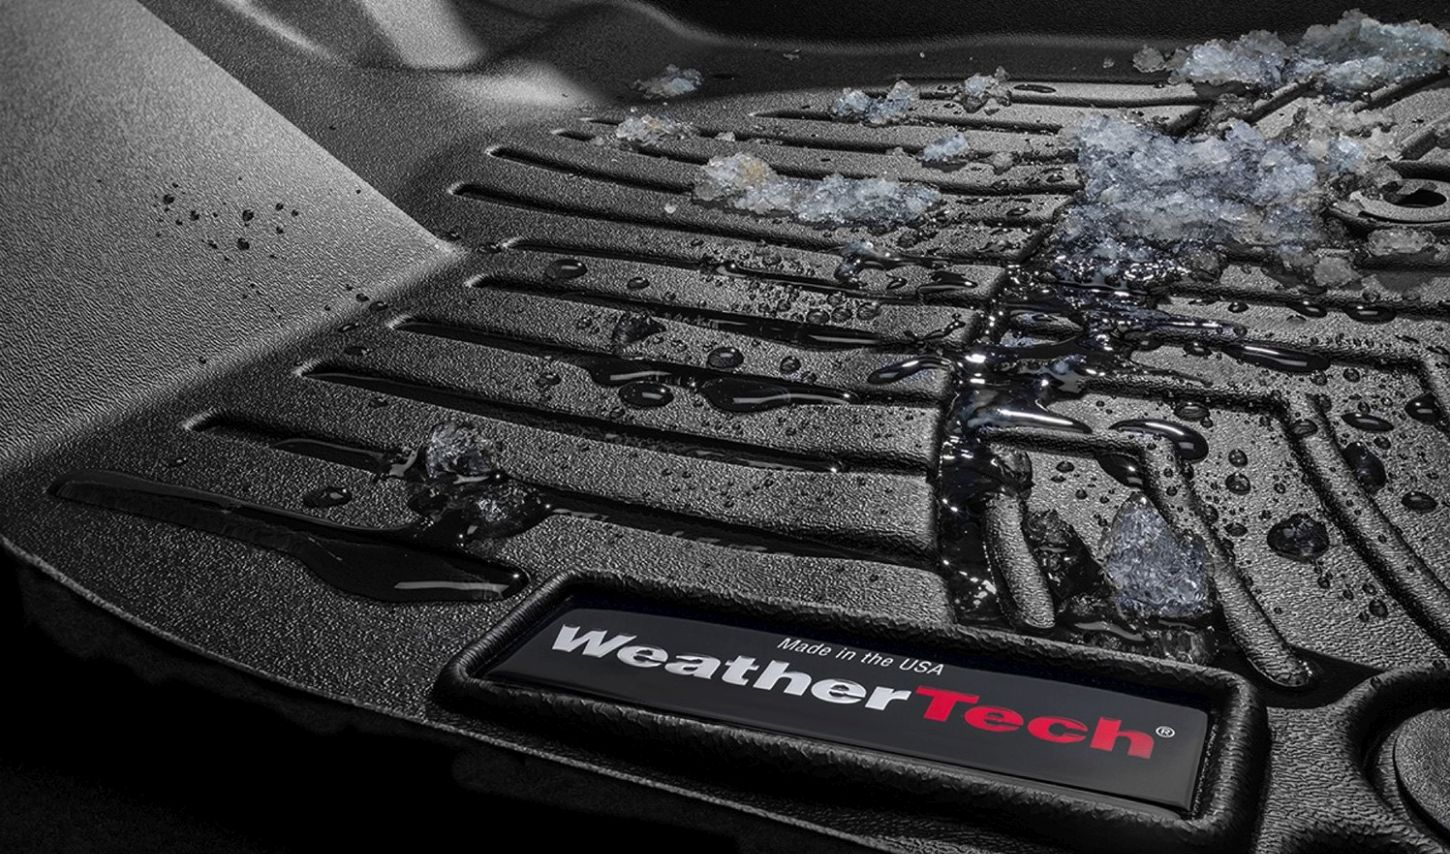 Weathertech Floor Mats Liners Customer Reviews Autoanything